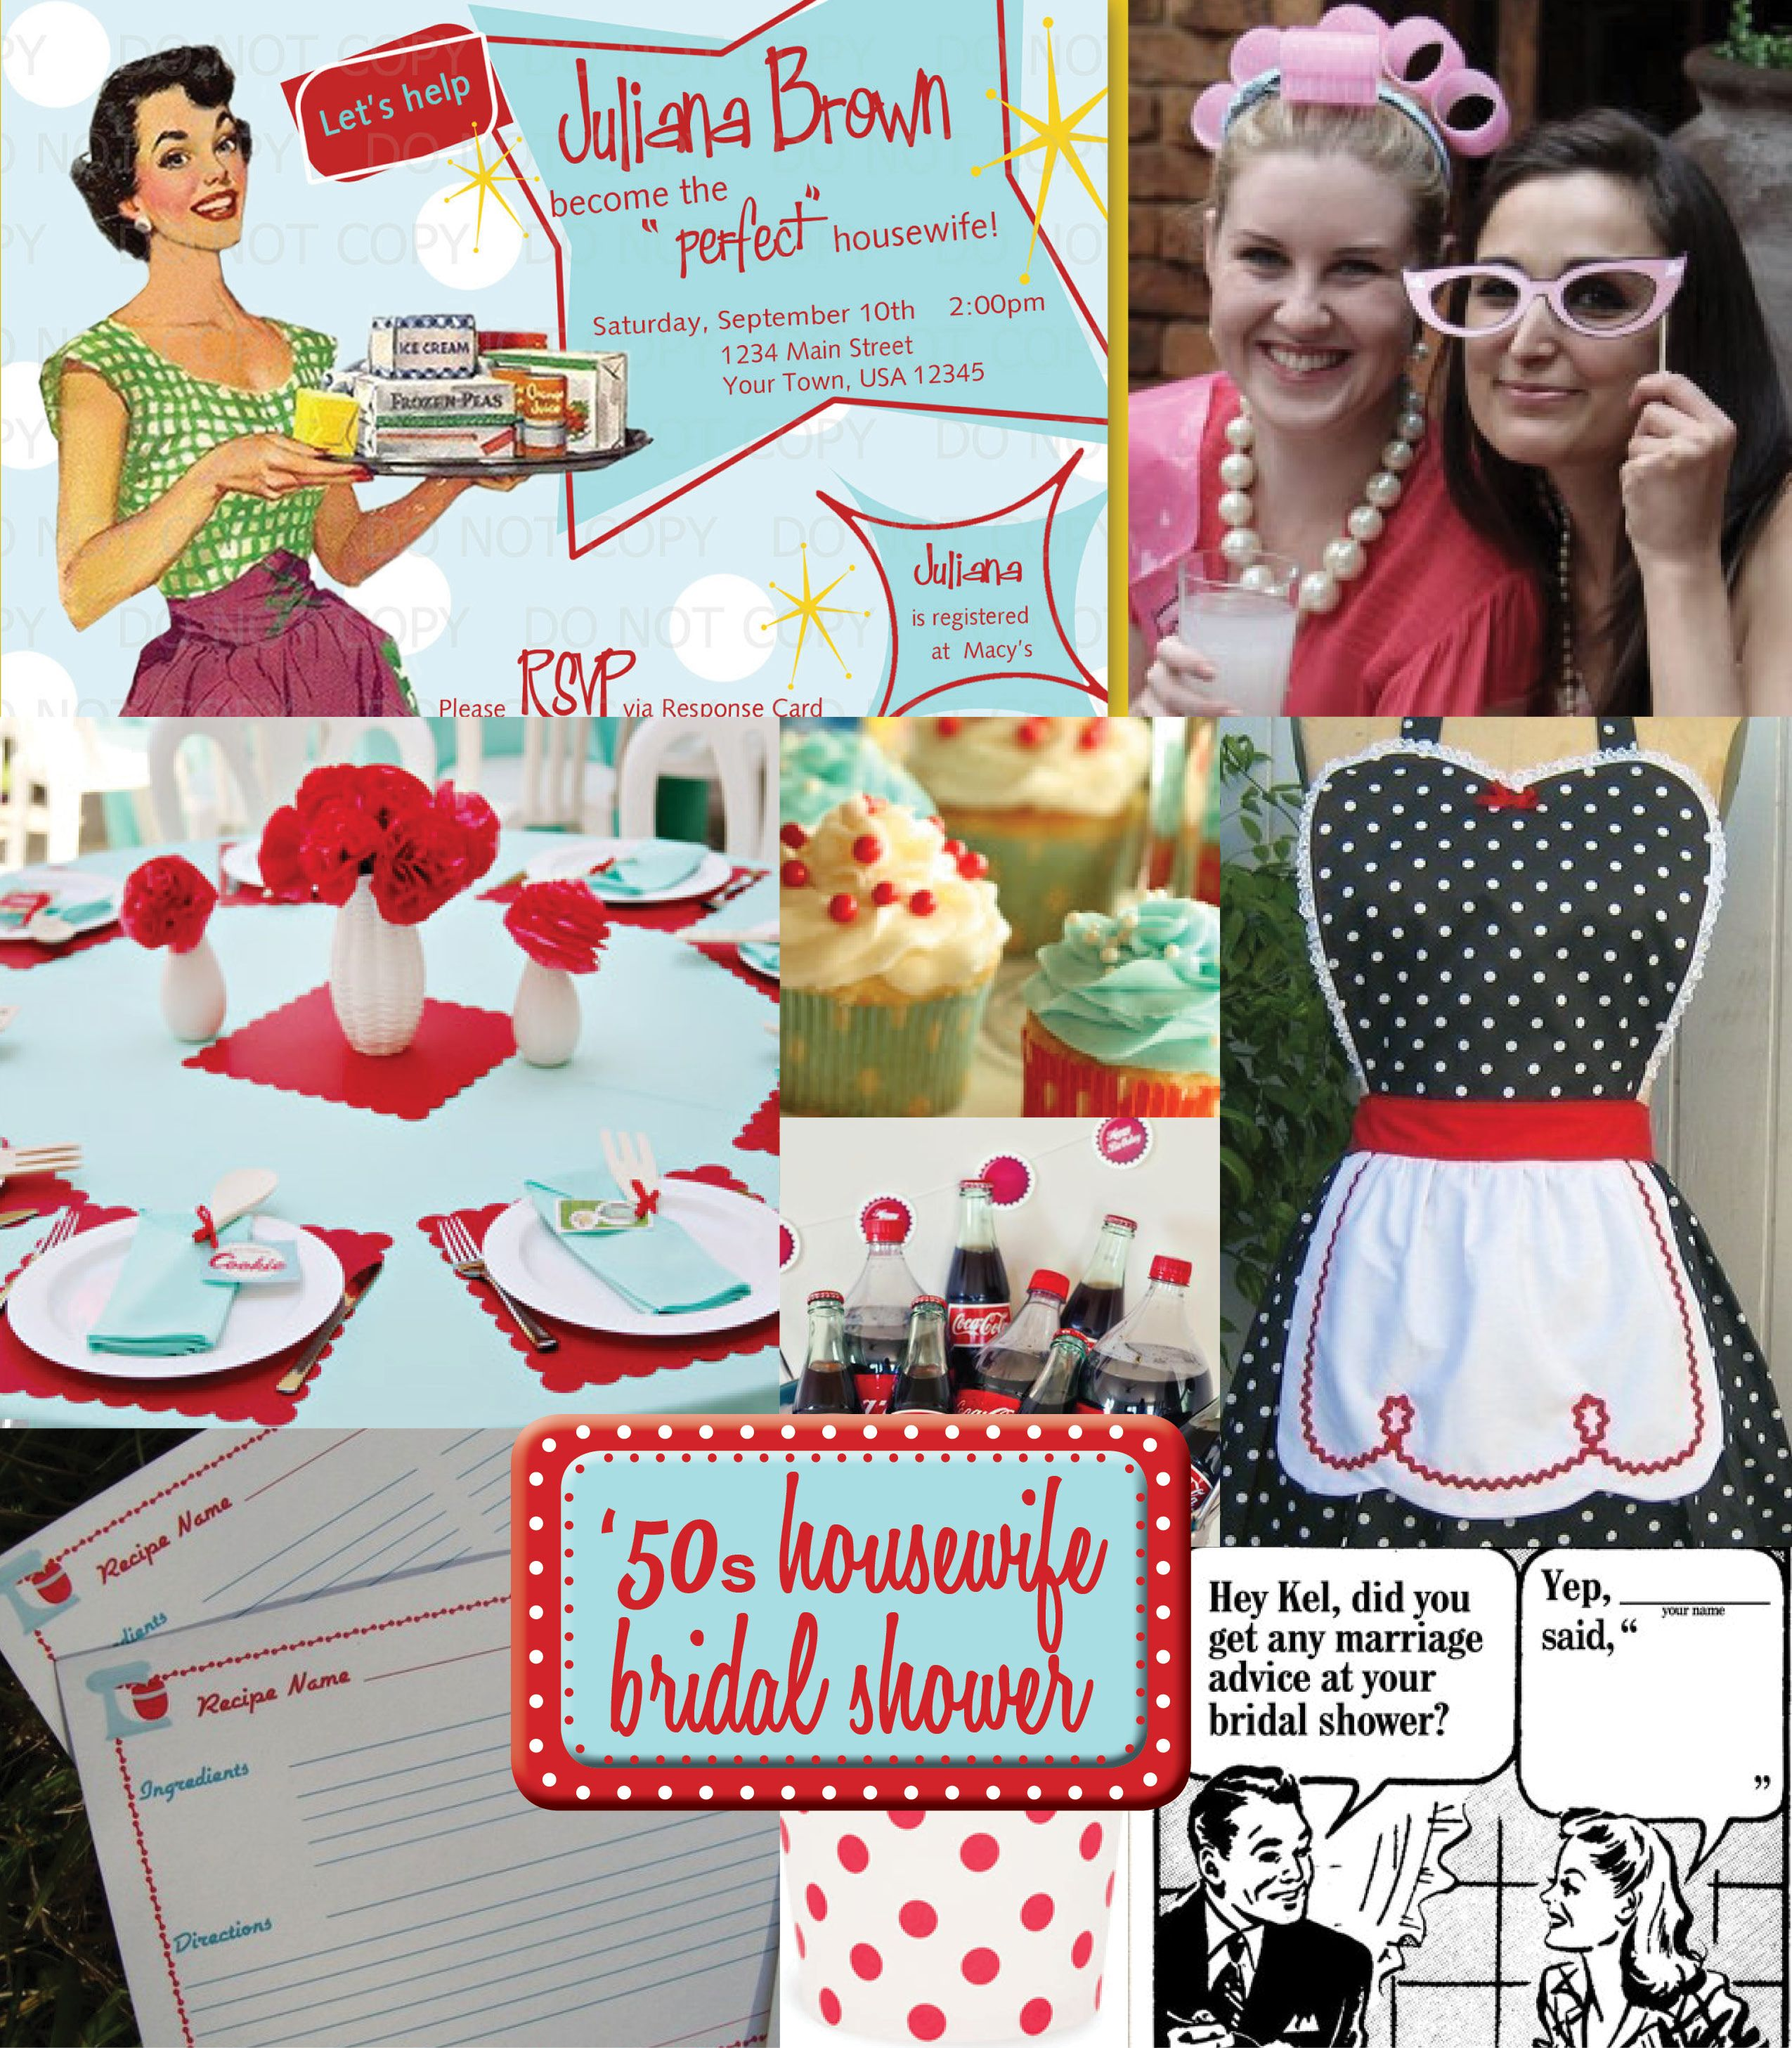 Kitchen Shower Ideas iw: 50s housewife bridal shower ideas   bridal showers, retro and